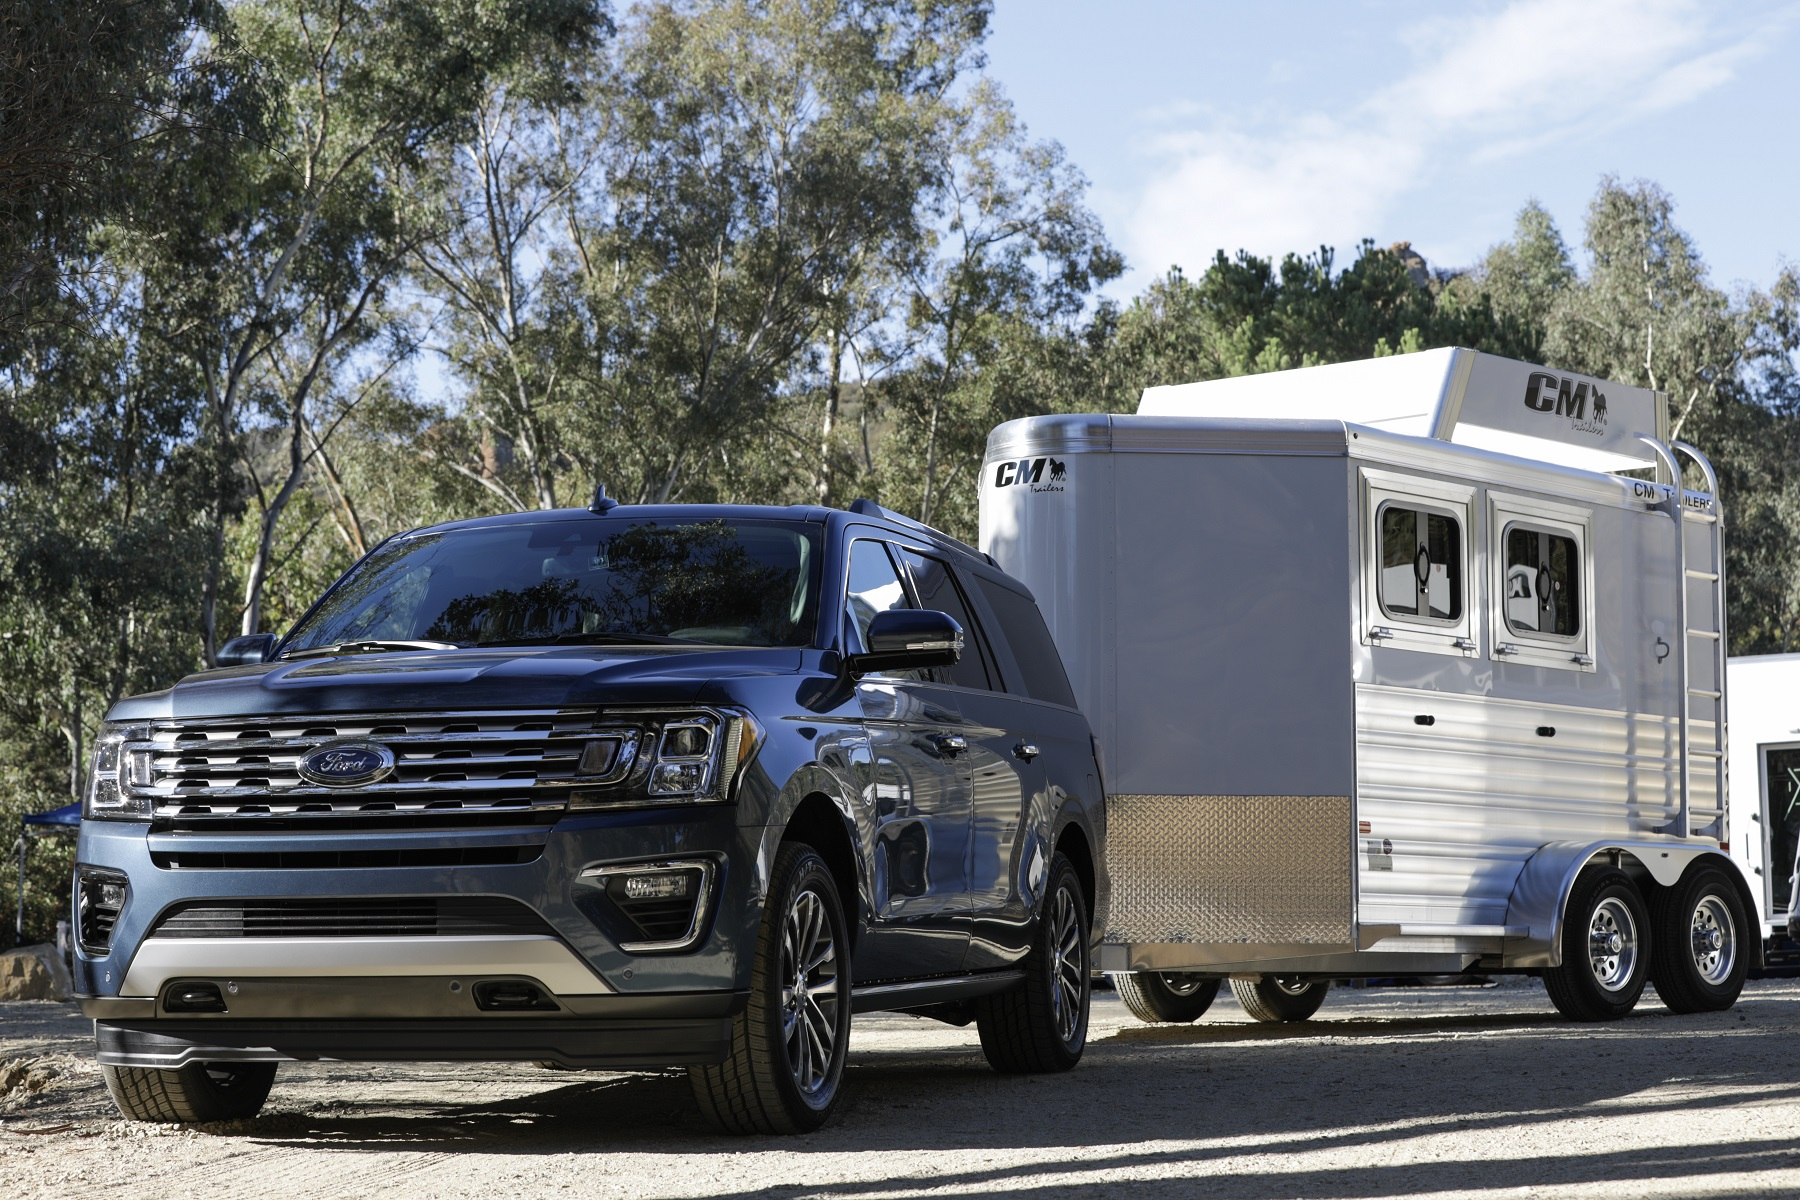 Manufacturer photo: The Expedition's all-new high-strength, aluminum-alloy body and redesigned high-strength steel frame enhance off-road and towing capabilities